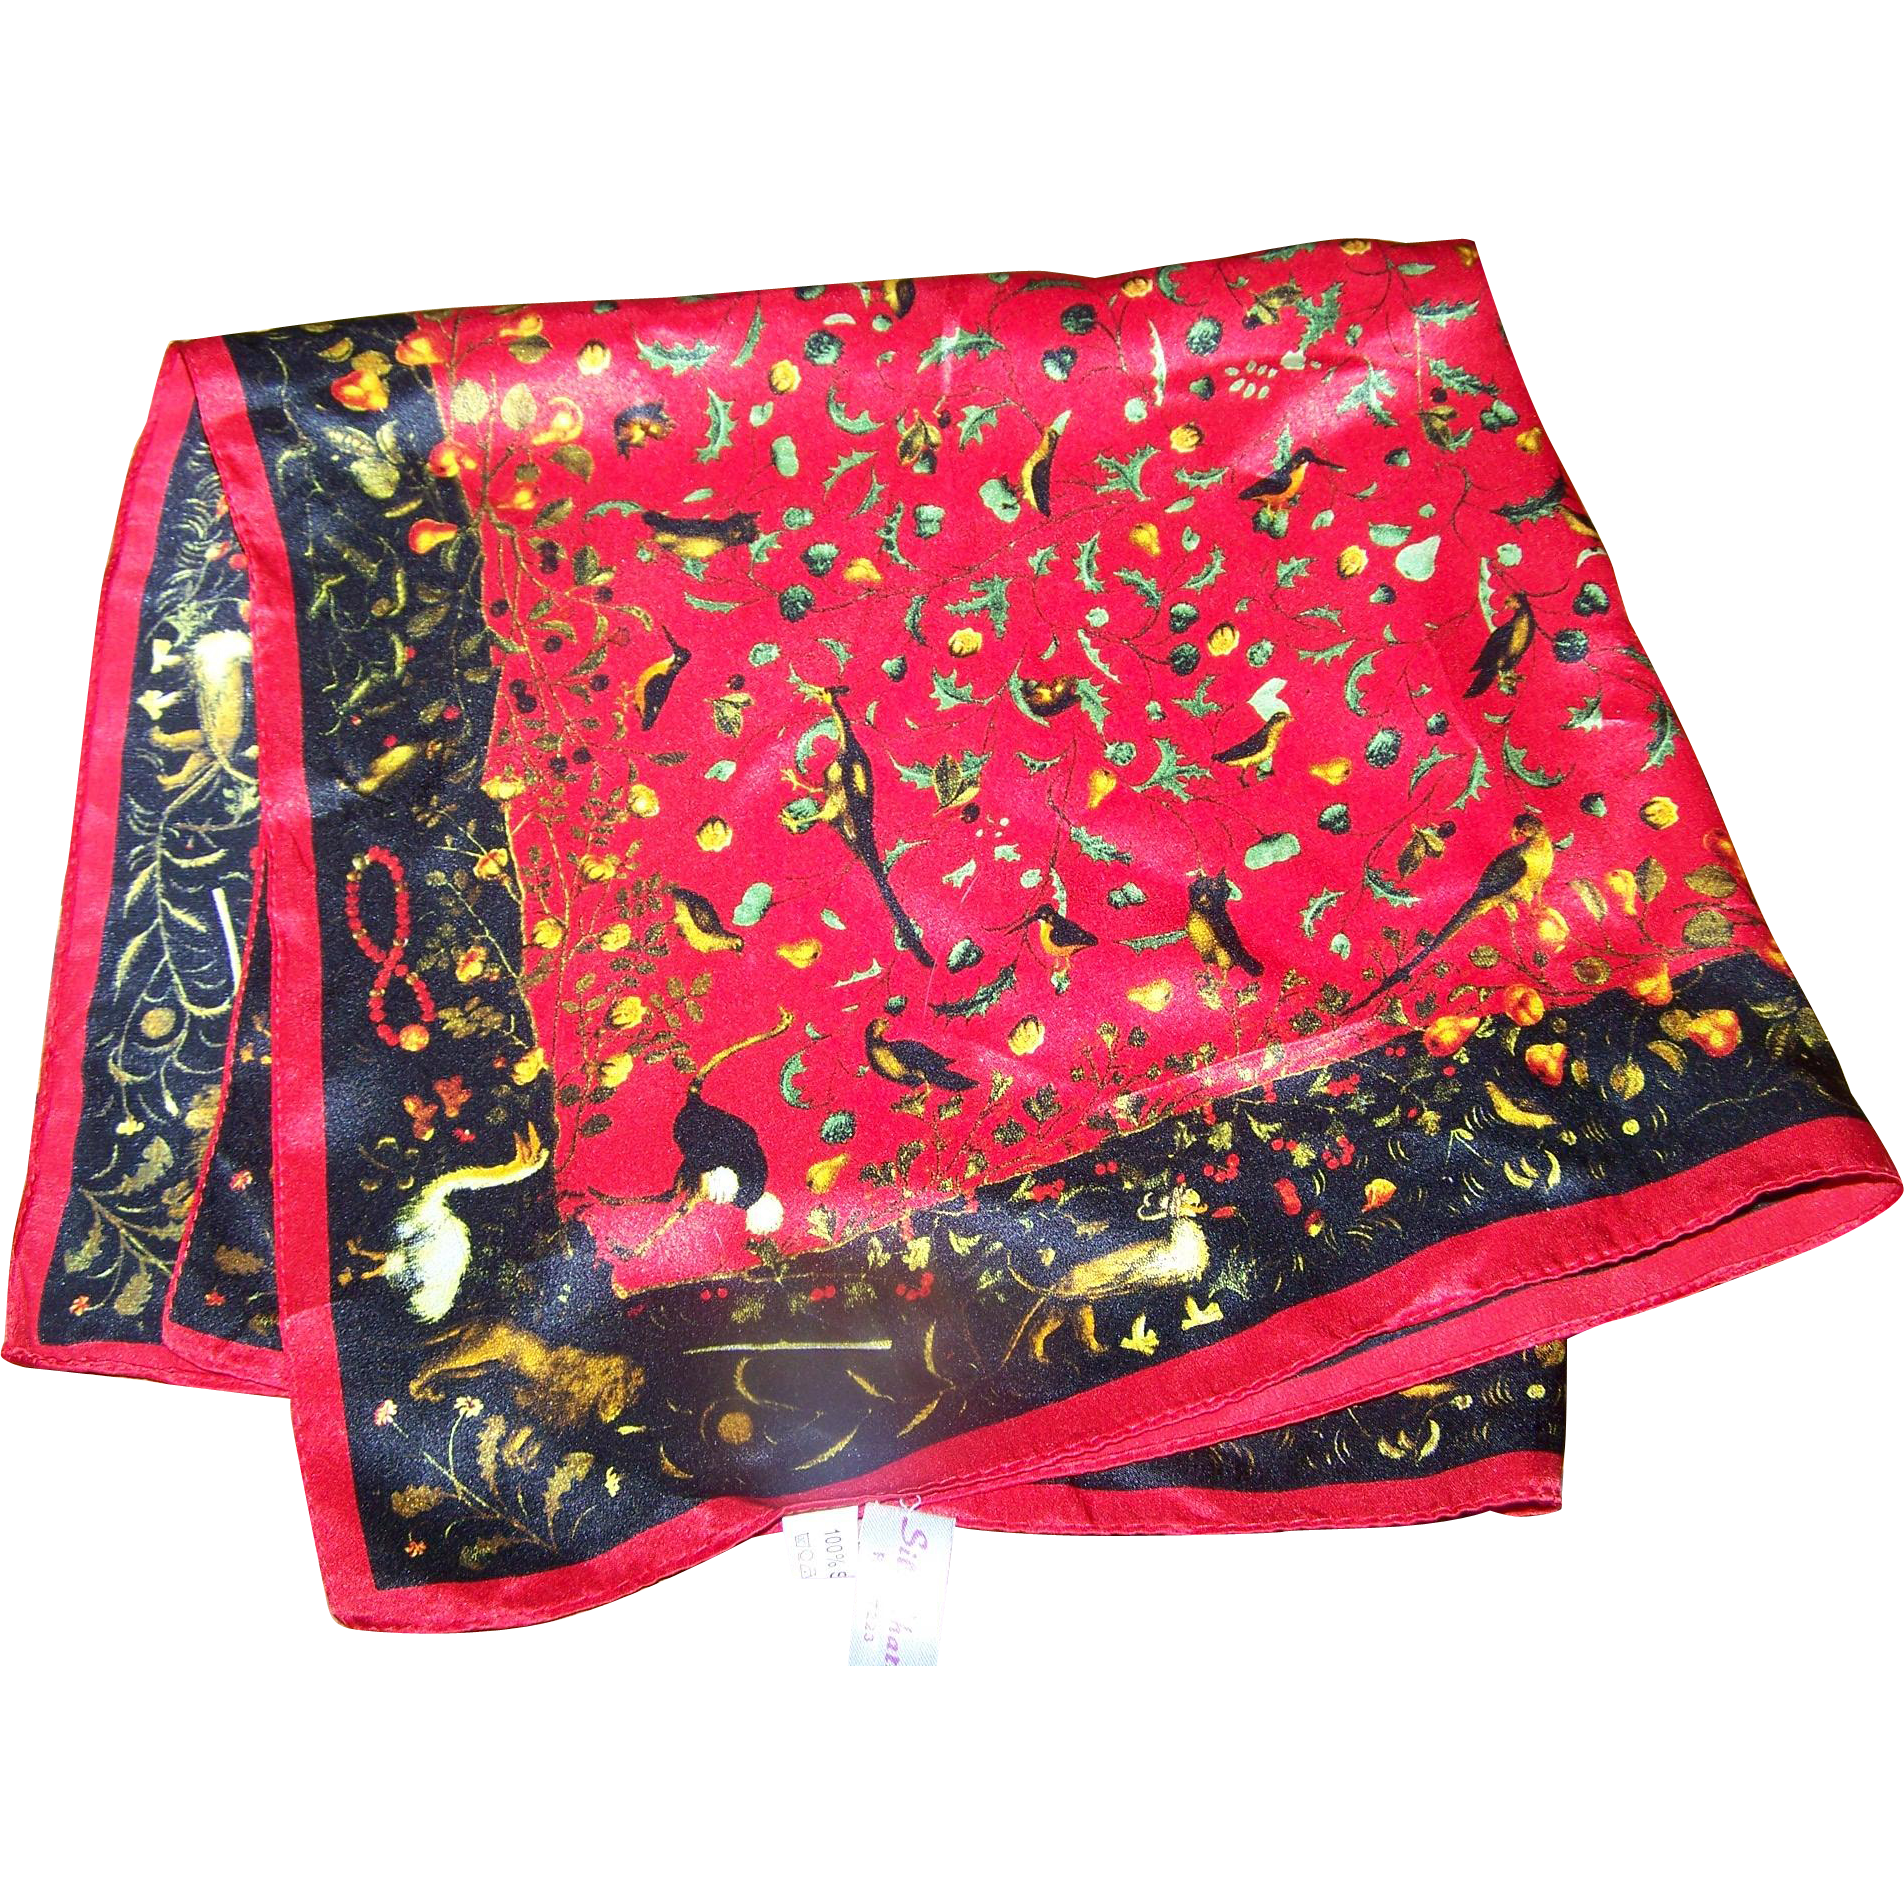 L Furniture Warehouse Victoria Bc Of What A Pretty Small 100 Silk Ladies Fashion Scarf Bird